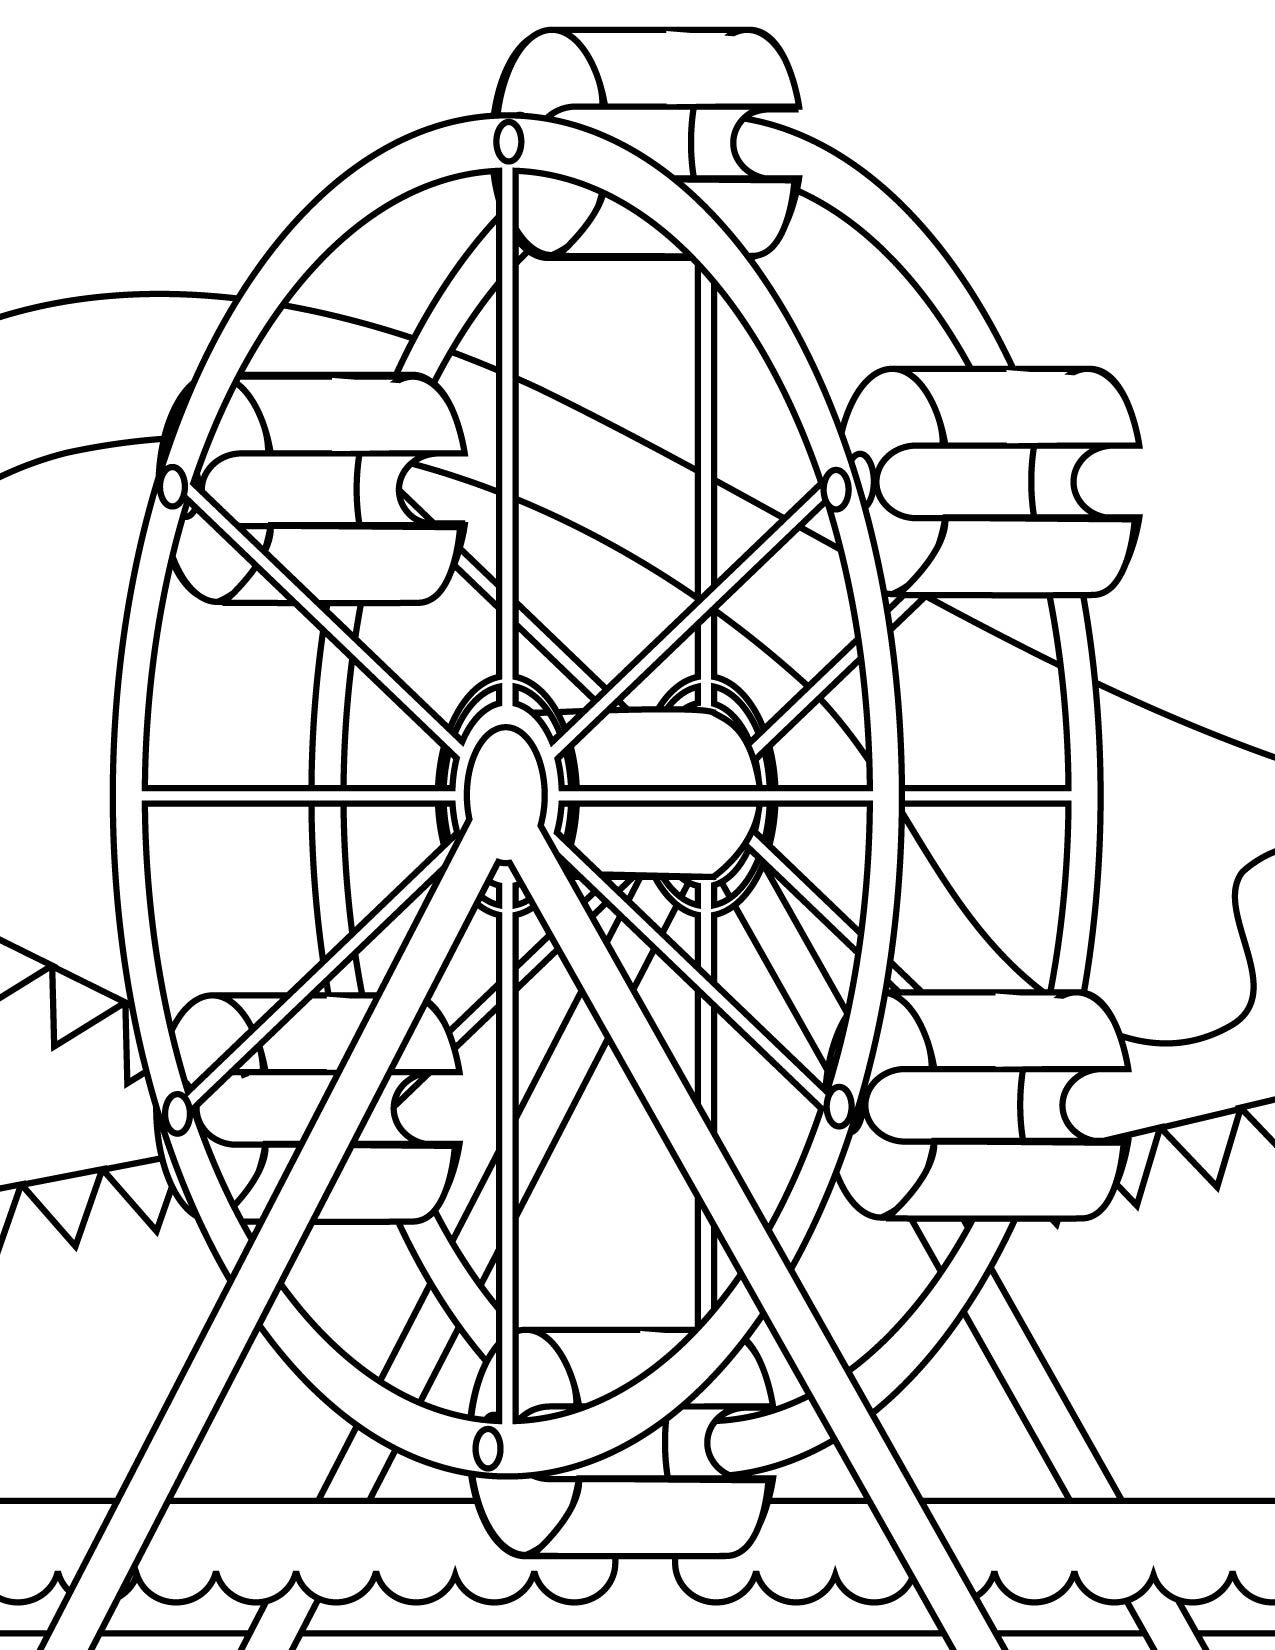 Drawn ferris wheel simple #5